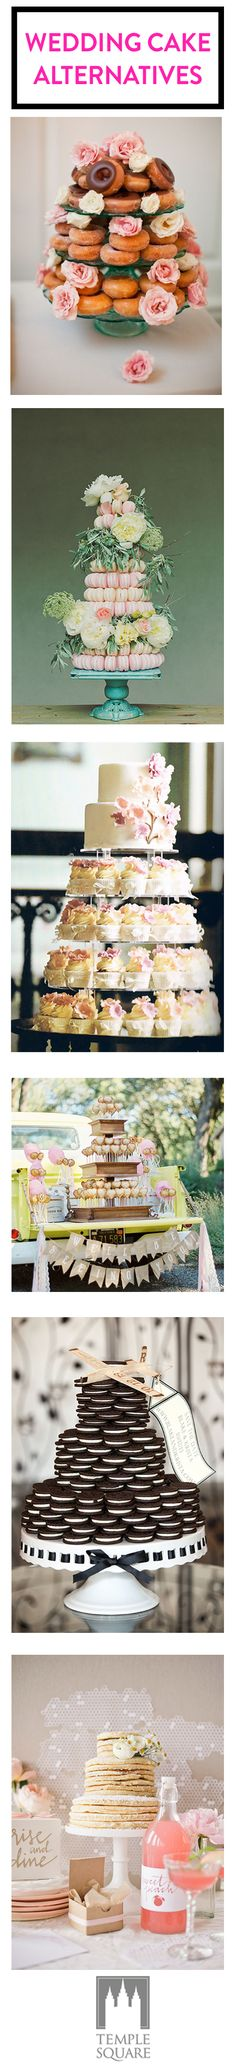 Ditch the cake at your wedding and go with one of these wedding cake alternatives! Wedding Sheet Cakes, Unique Wedding Cakes, Beautiful Wedding Cakes, Wedding Cake Designs, Unique Weddings, Dream Wedding, Amazing Weddings, Card Box Wedding, Wedding Bells